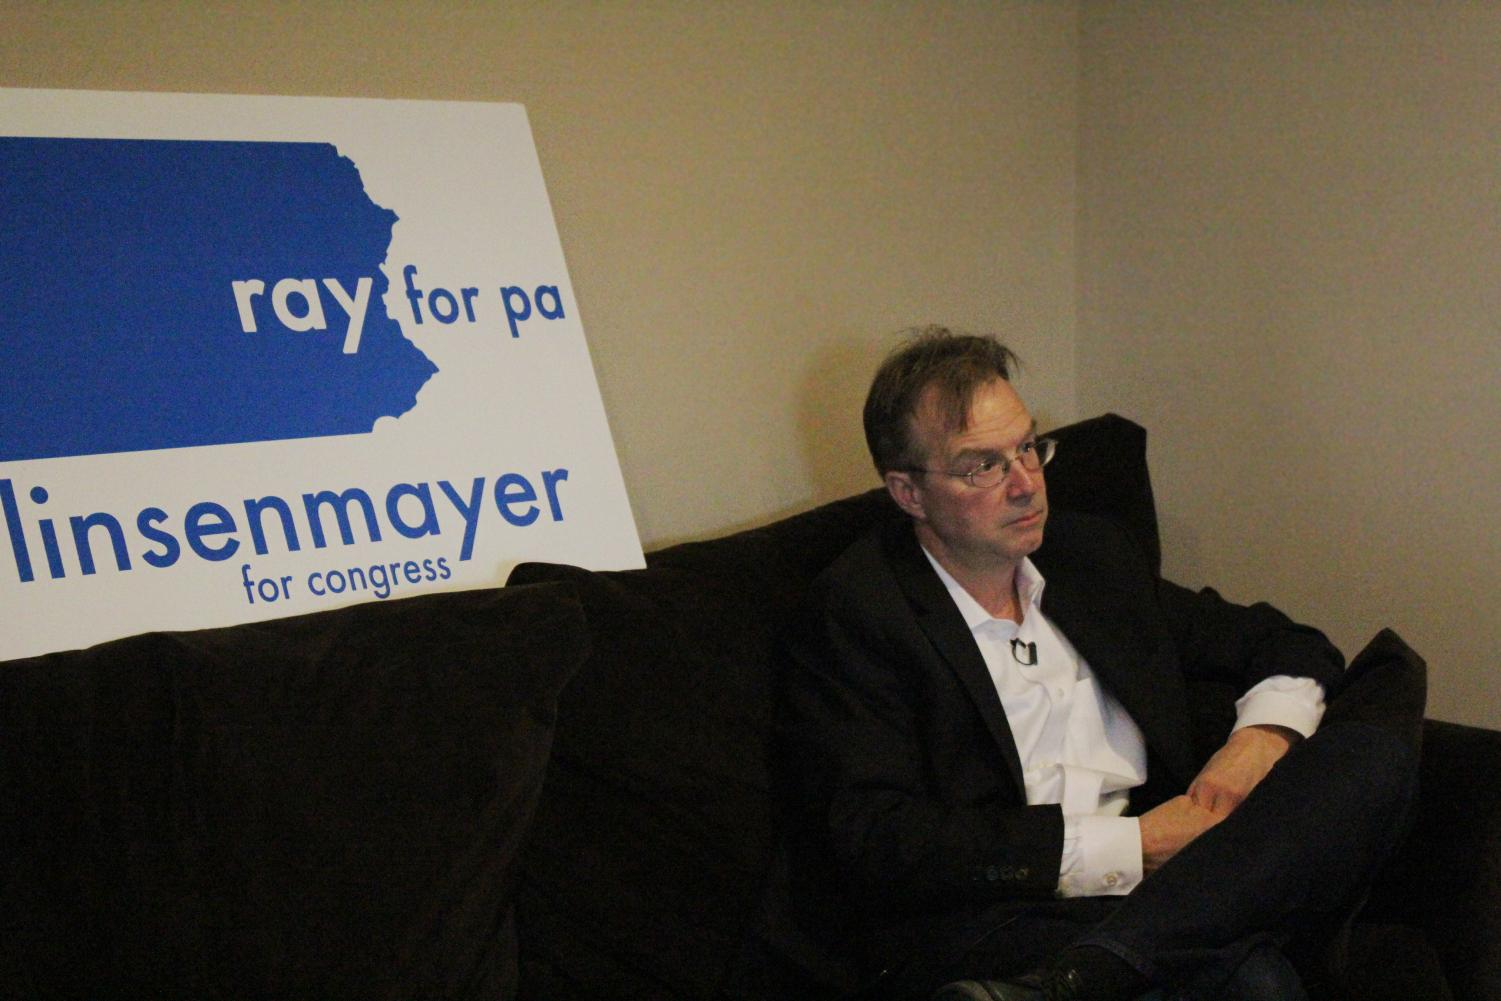 Gage Goulding interviews Ray Linsenmayer.